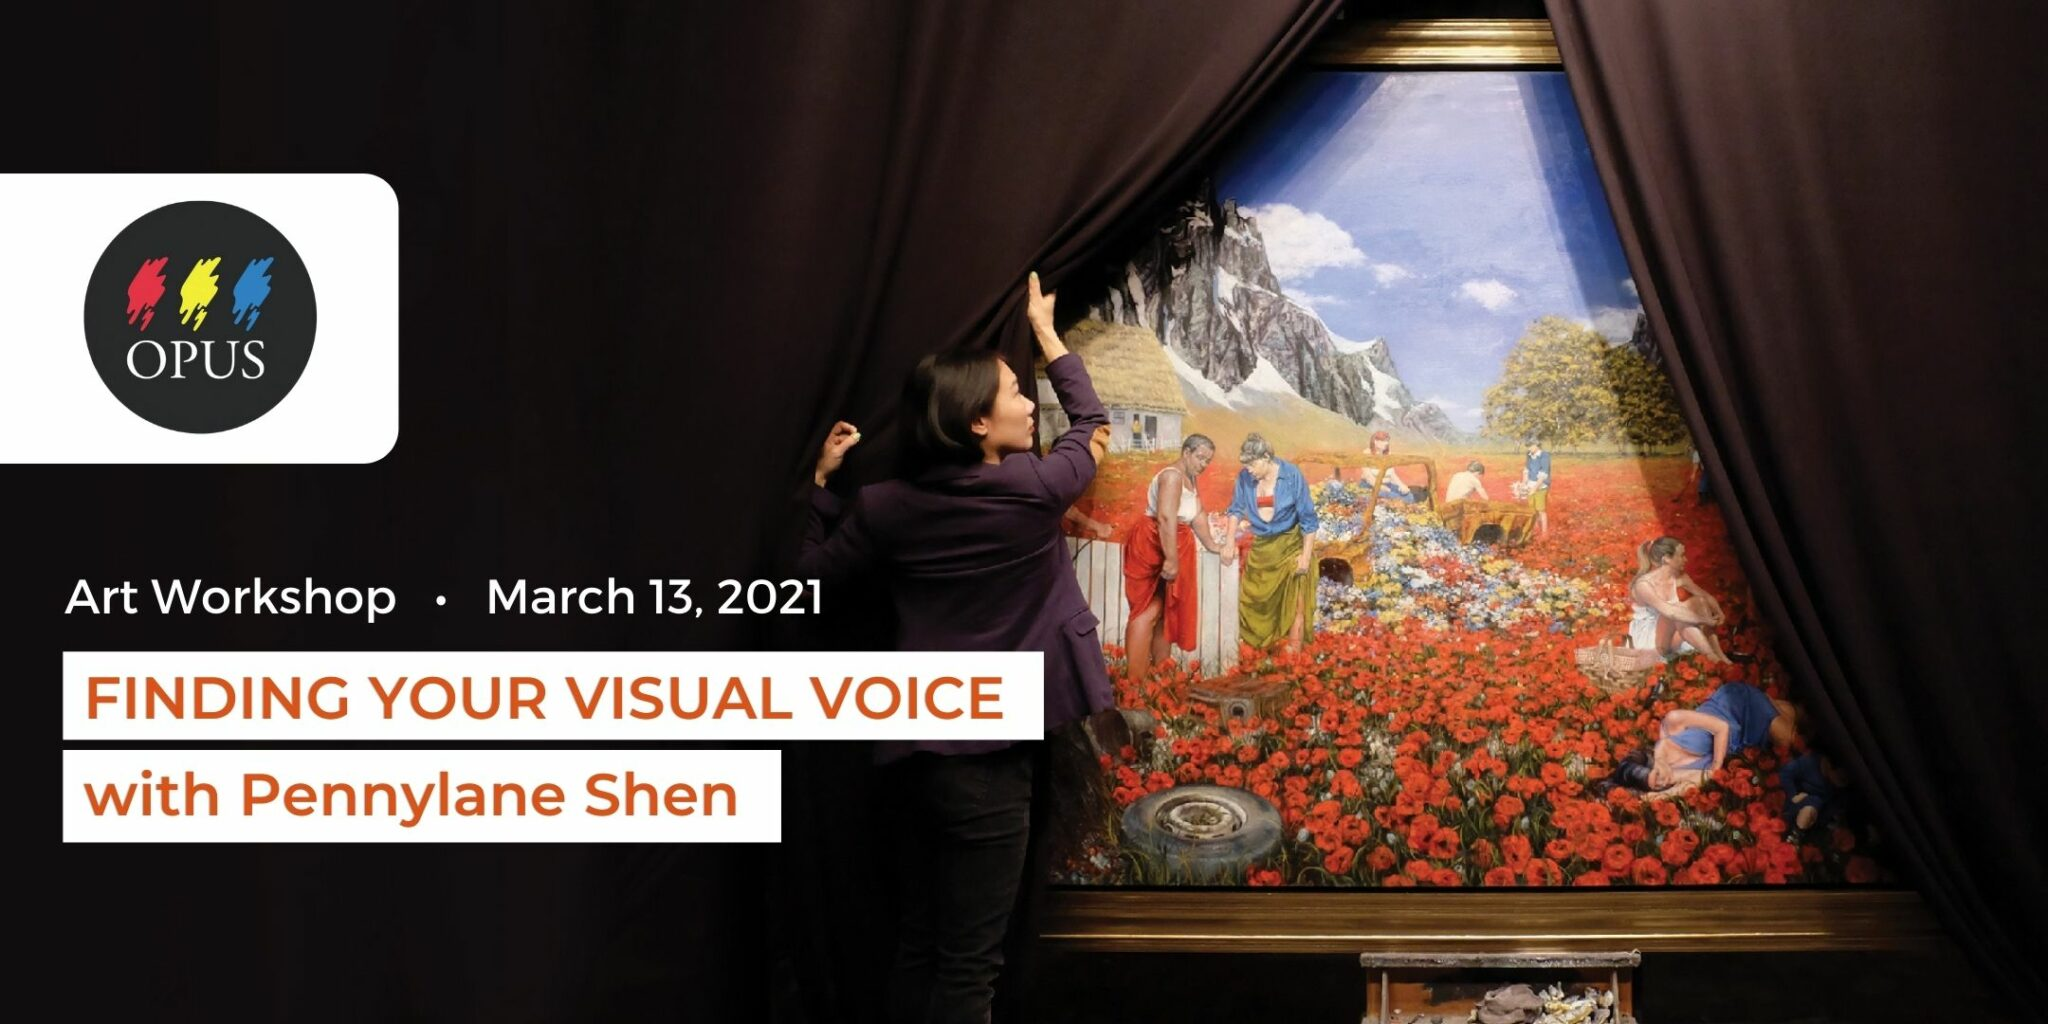 Event: Finding Your Visual Voice with Pennylane Shen